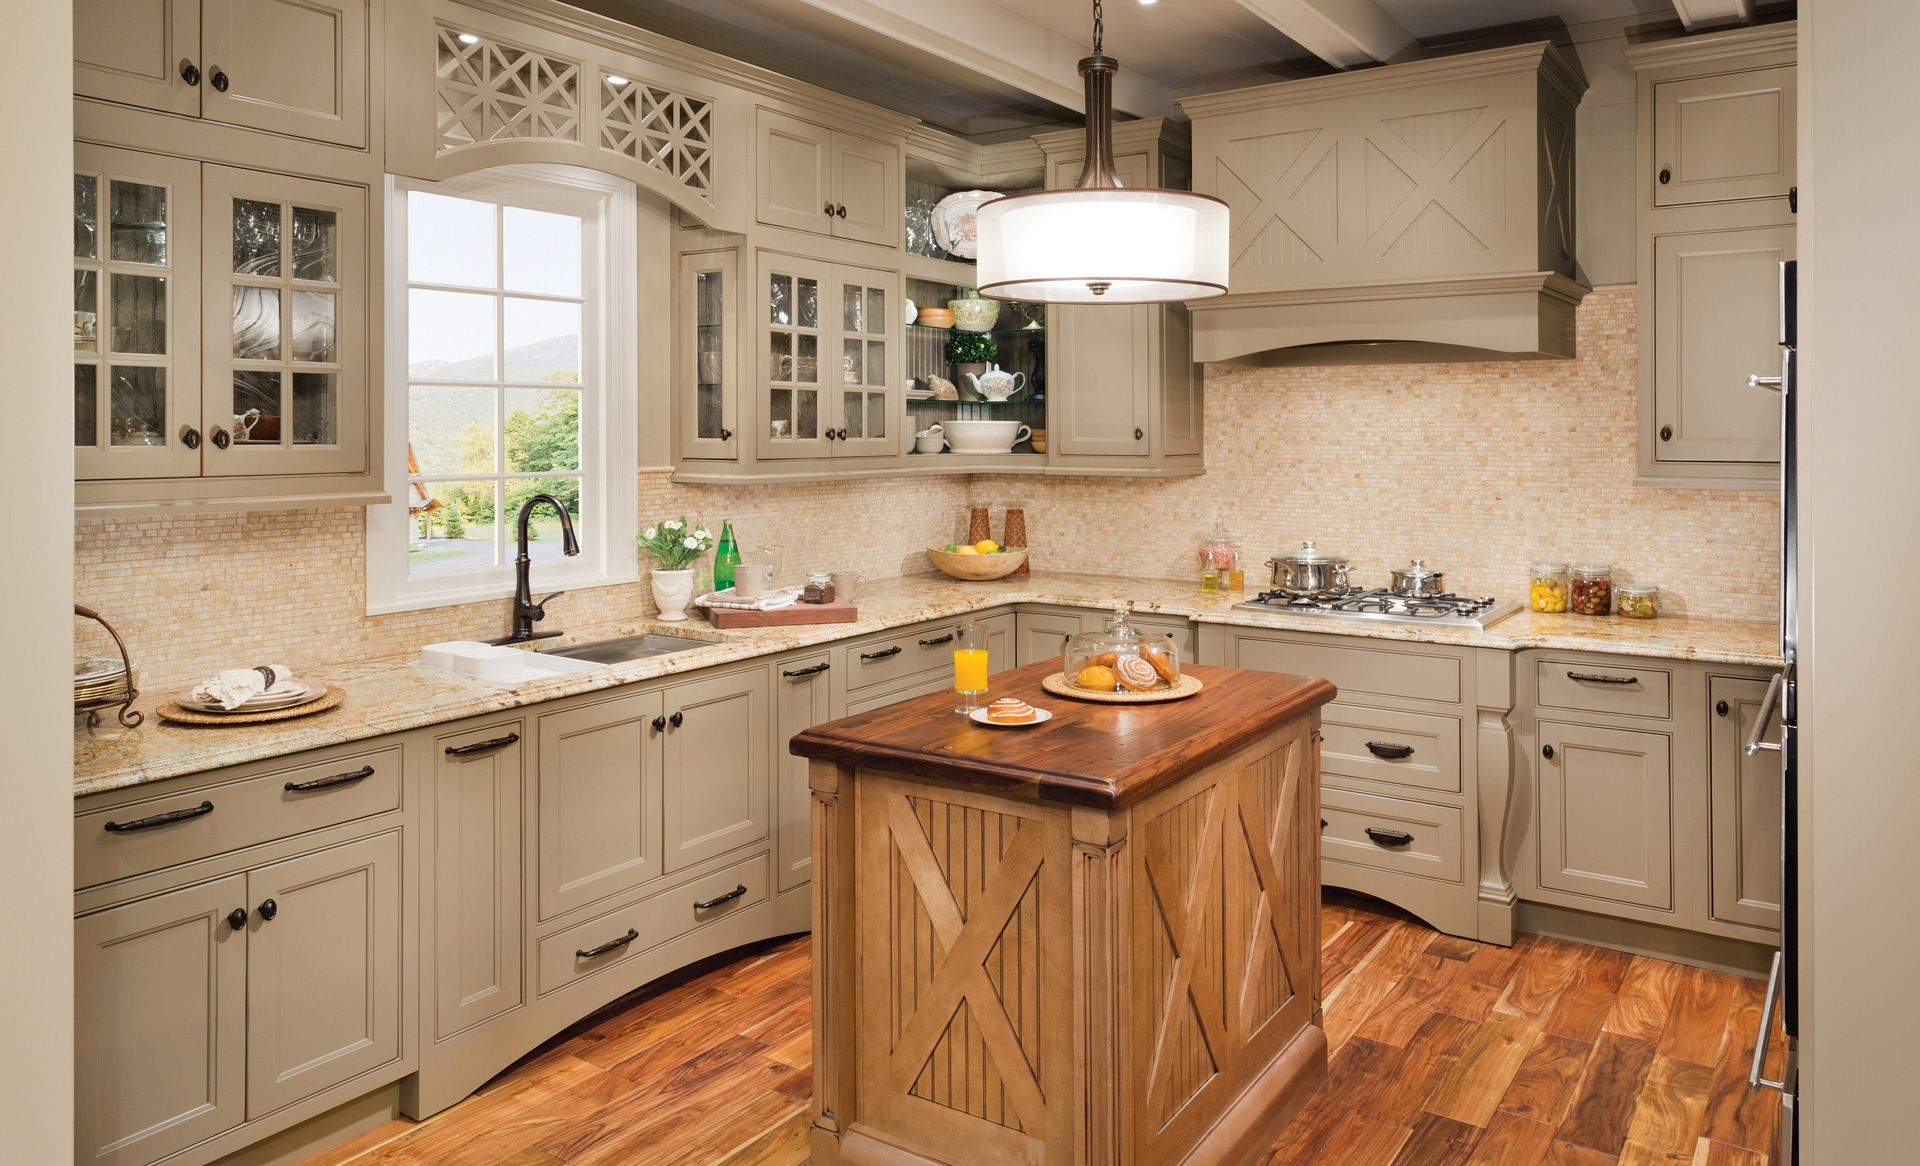 Best Clear Coat For Kitchen Cabinets Home Depot Kitchen Custom Kitchen Cabinets Design Beautiful Kitchen Cabinets